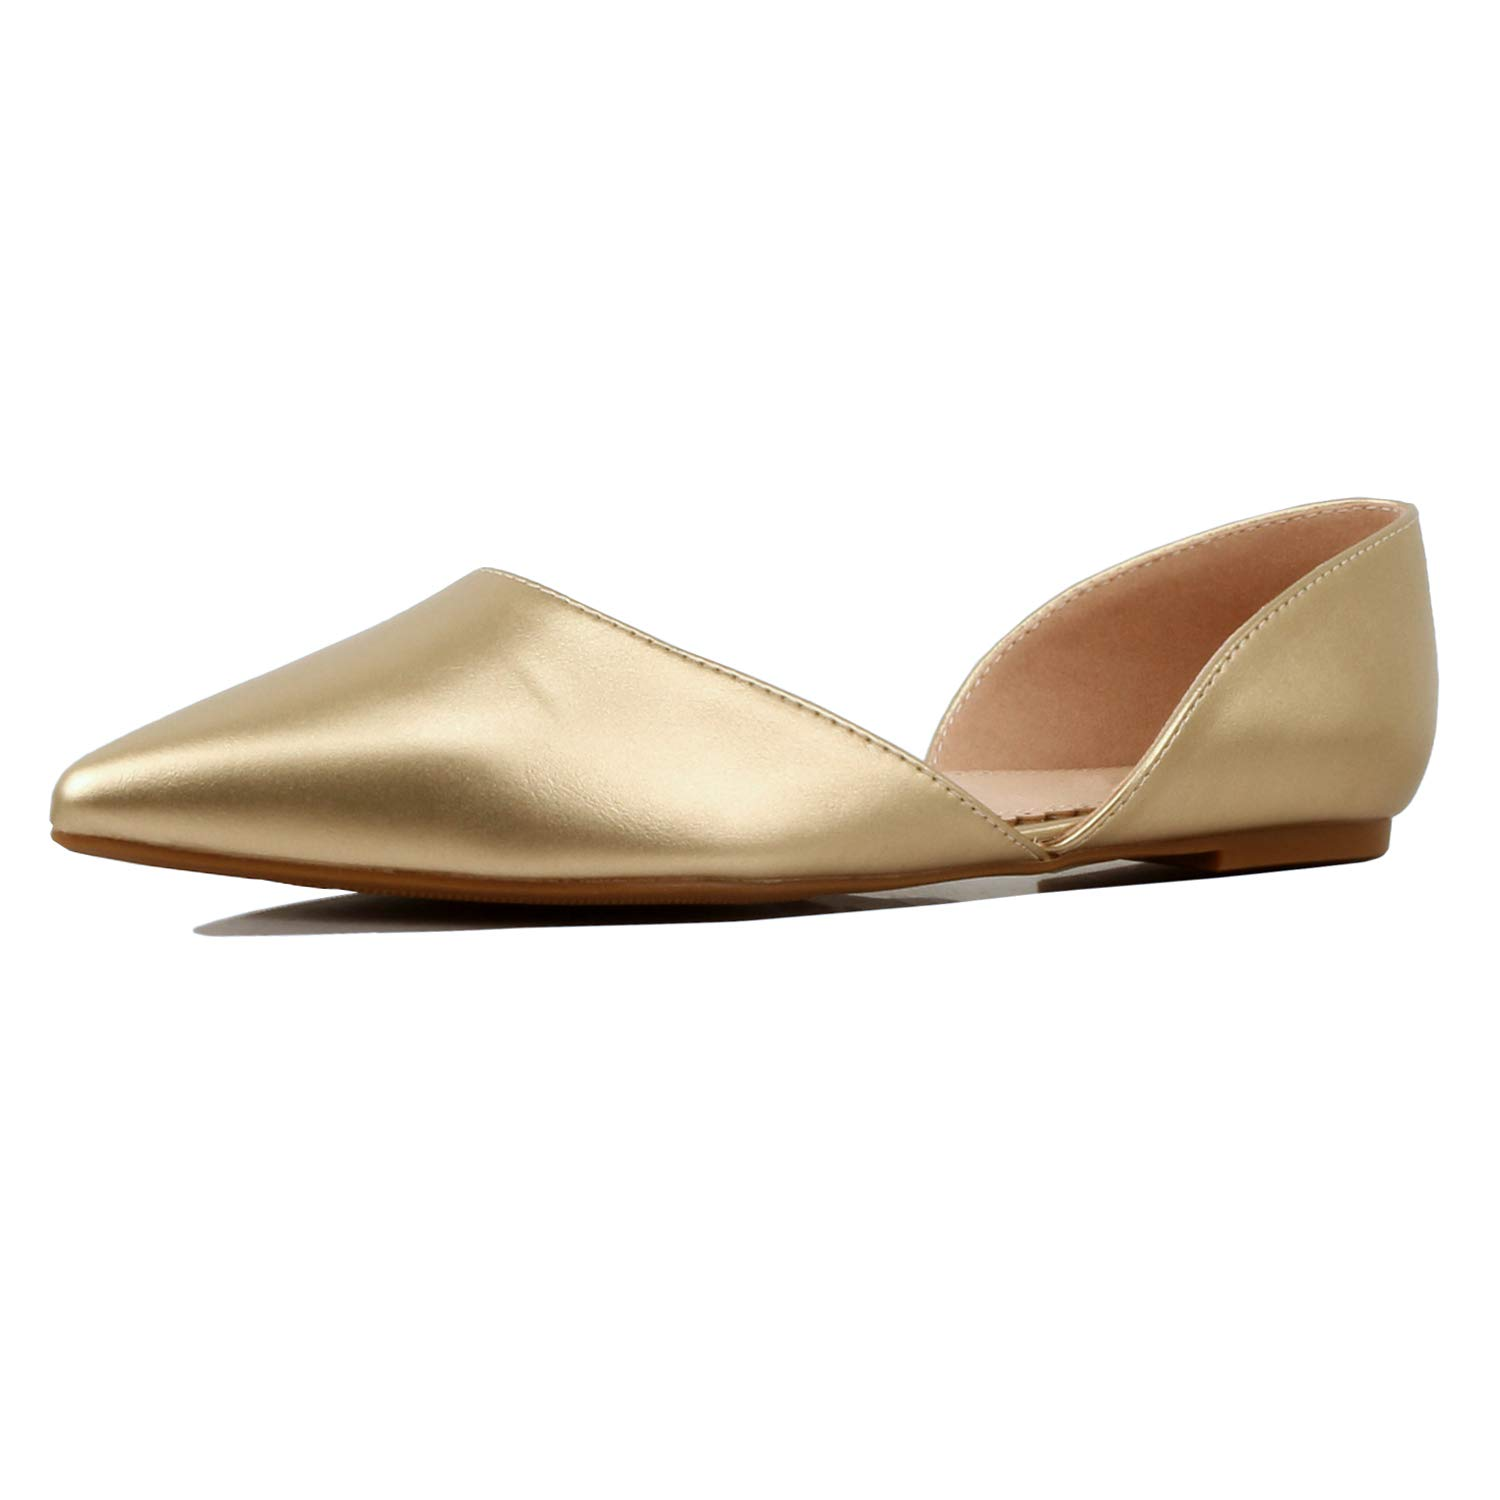 01 gold Pu Guilty Heart Womens D'Orsay Almond Pointed Toe Slip On Casual Flats